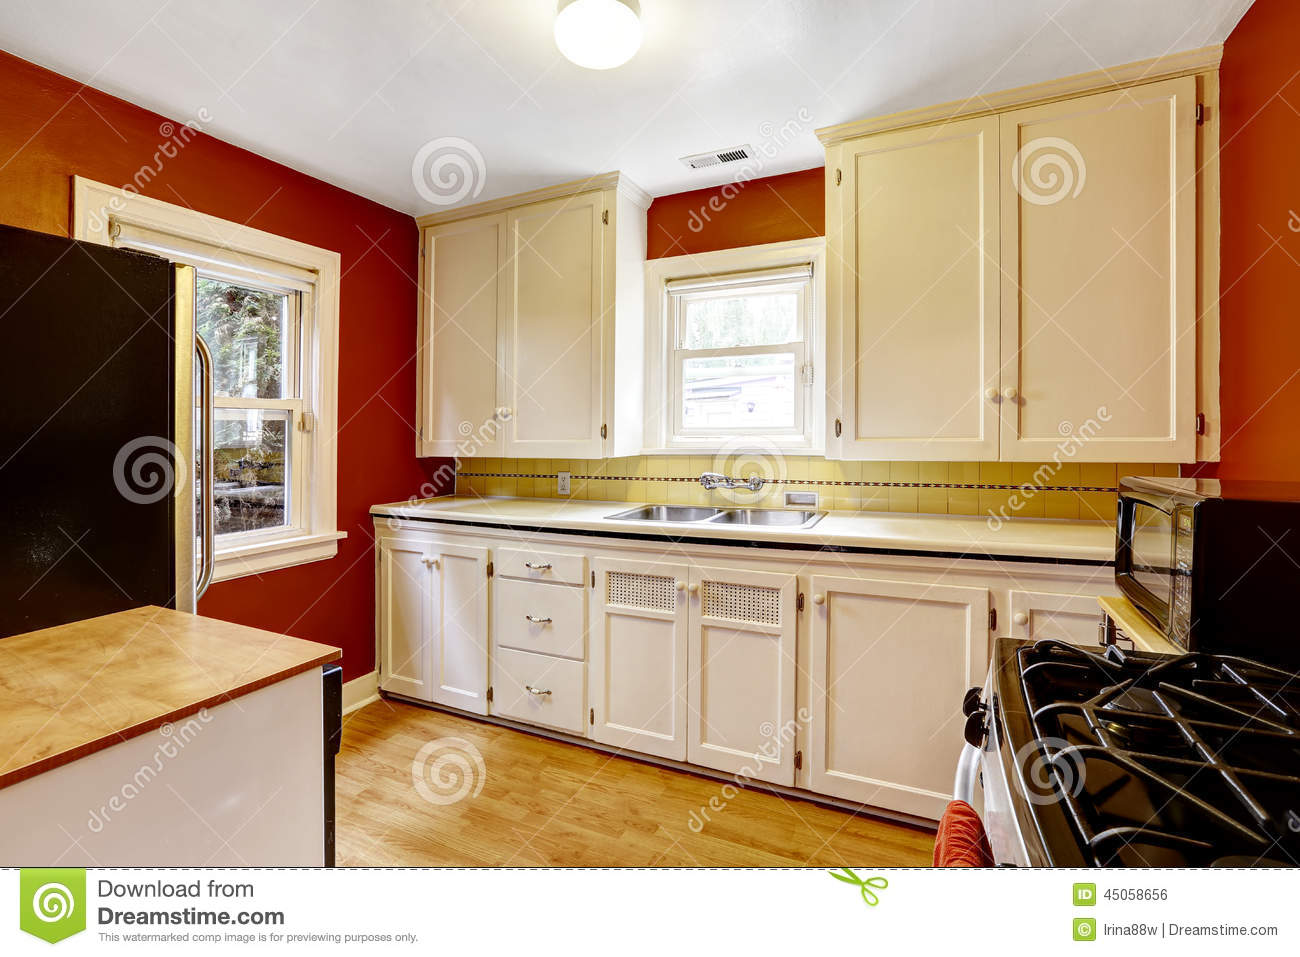 Bright Kitchen Cabinets White Kitchen Cabinets With Bright Red Wall Stock Photo